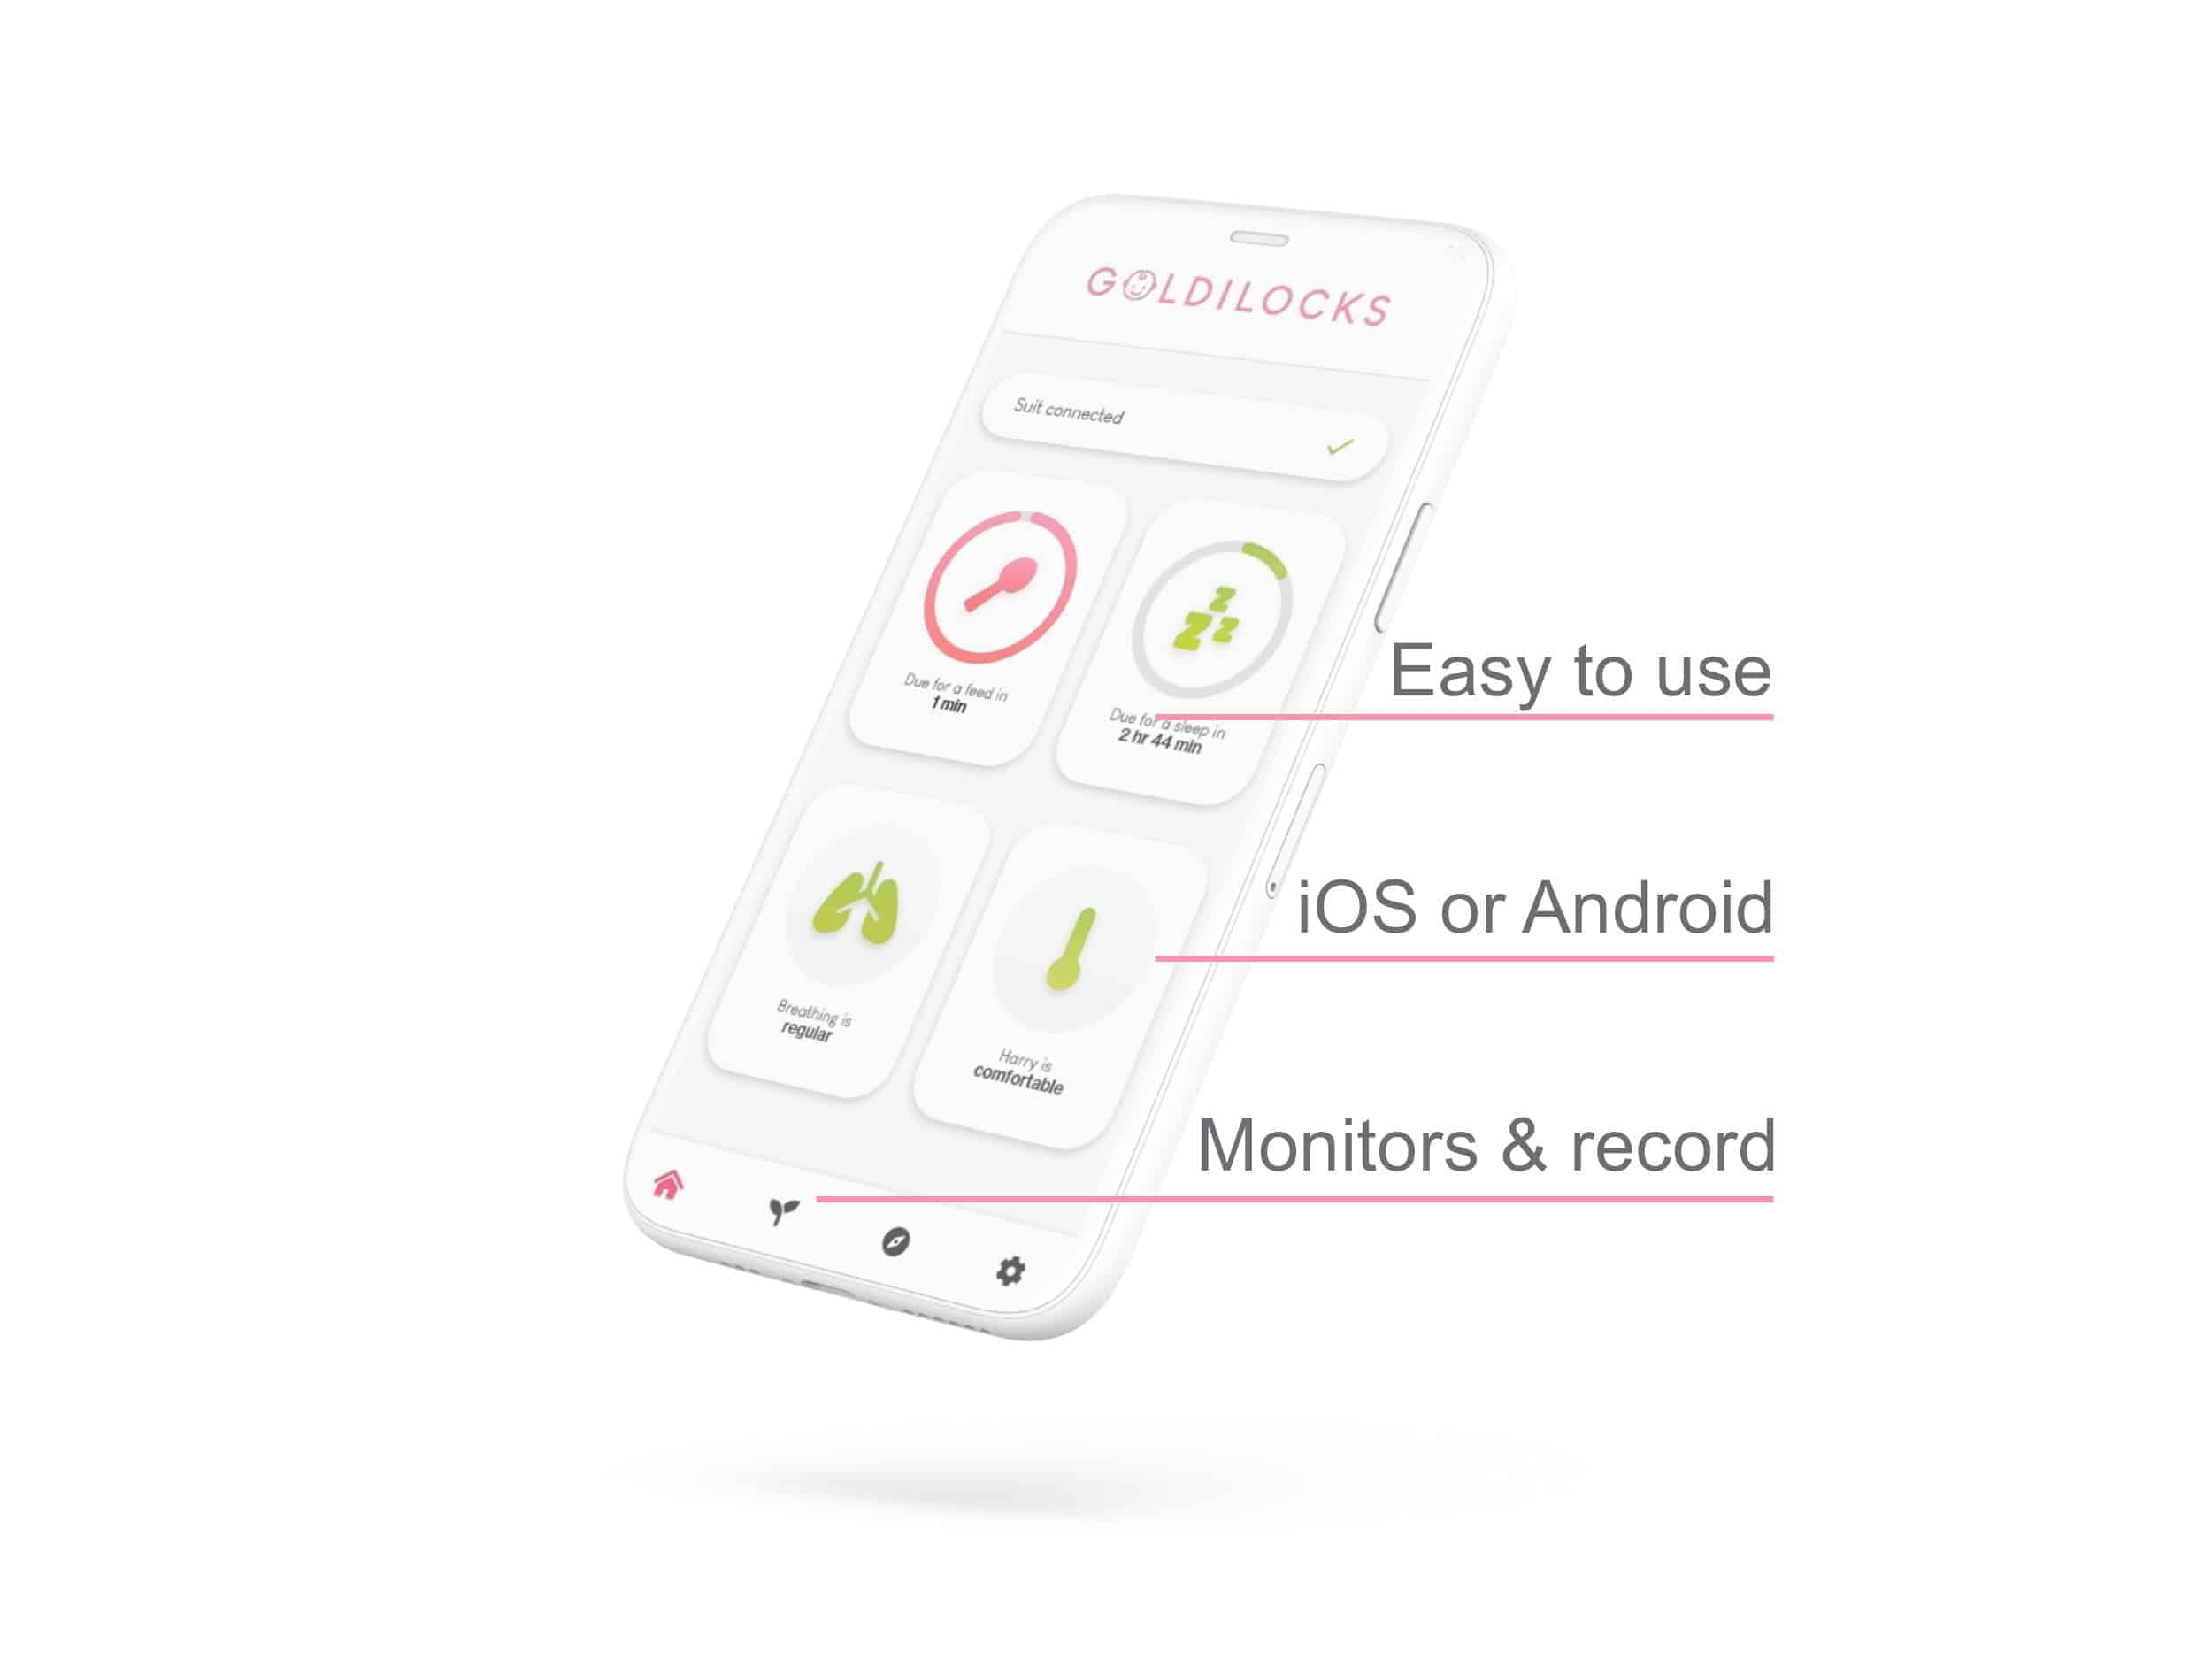 What are the key features of the Goldilocks Suit smartphone app